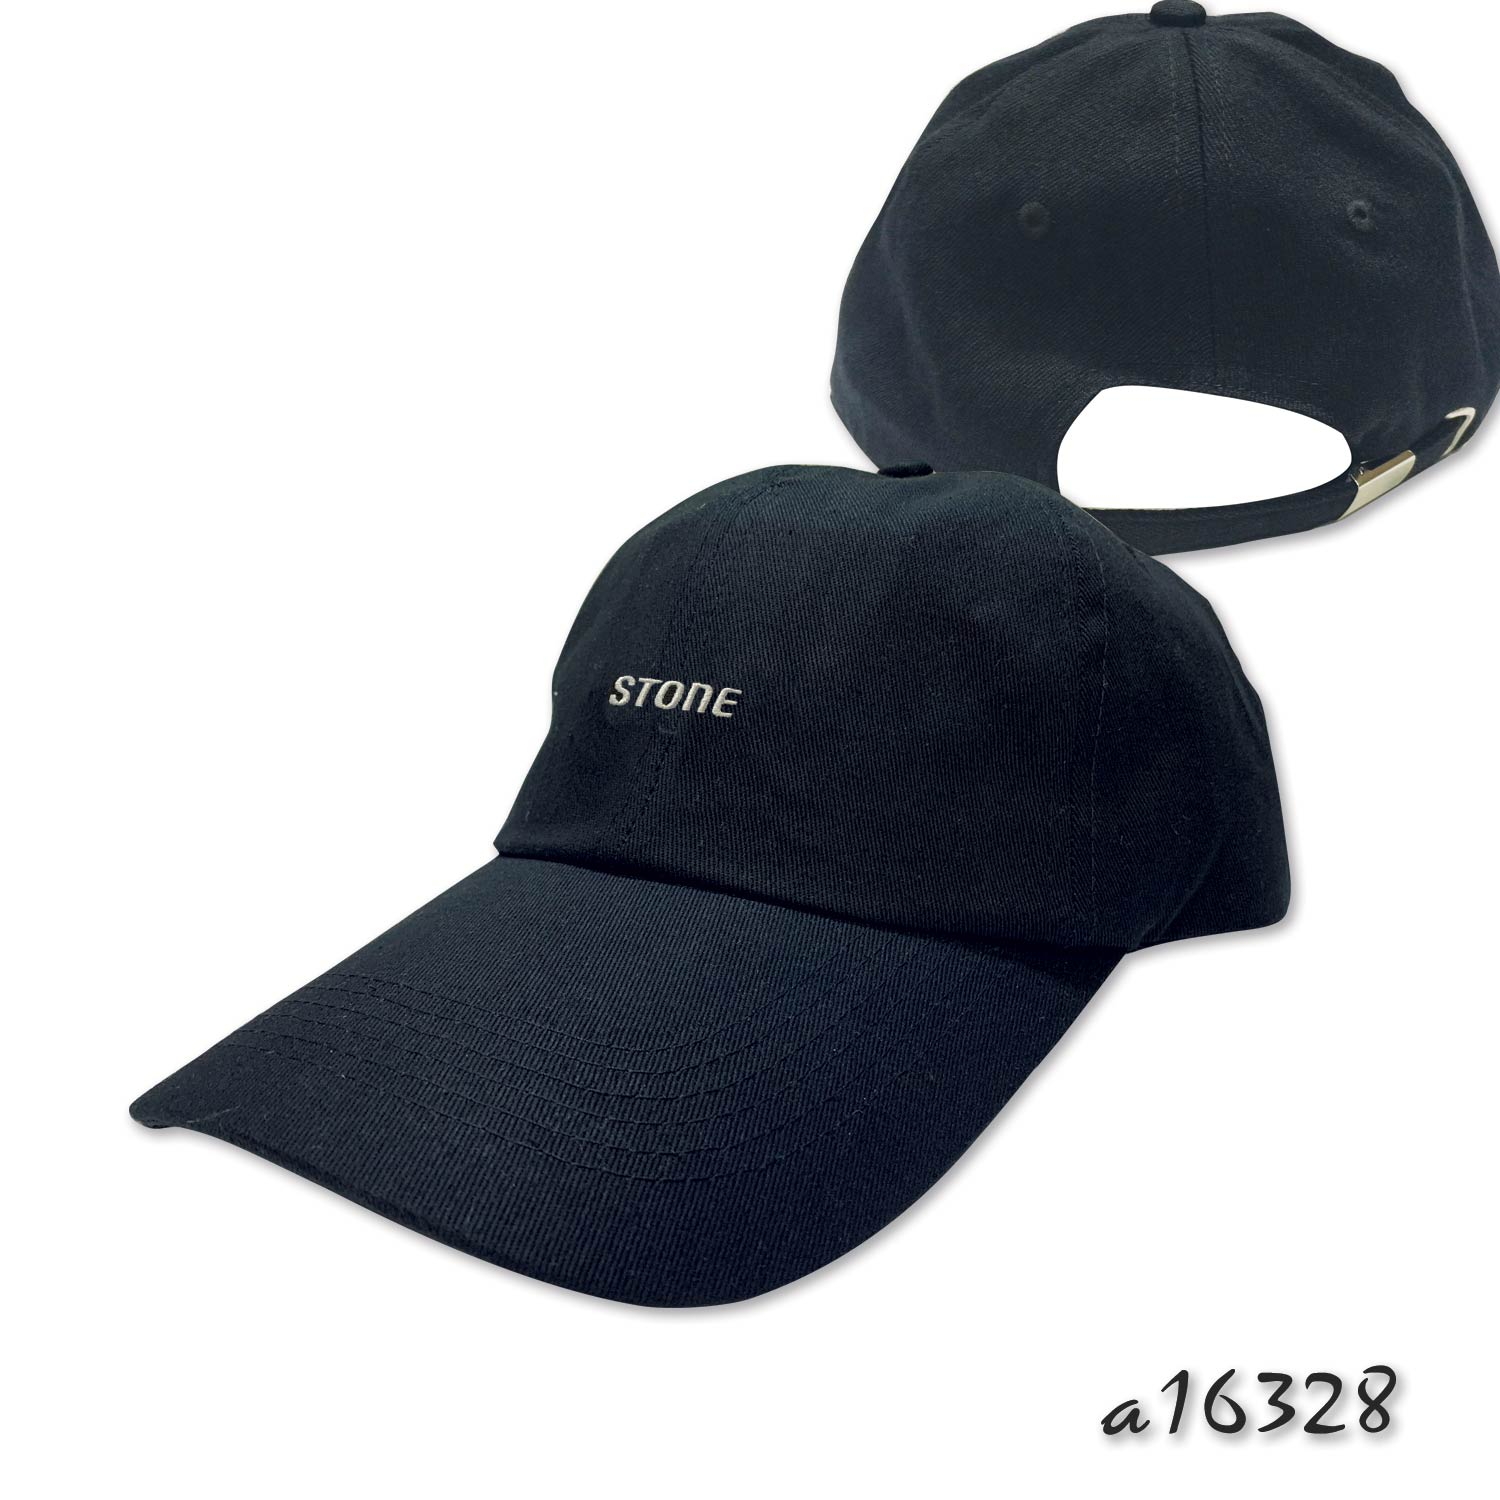 Low cap with extra long visor